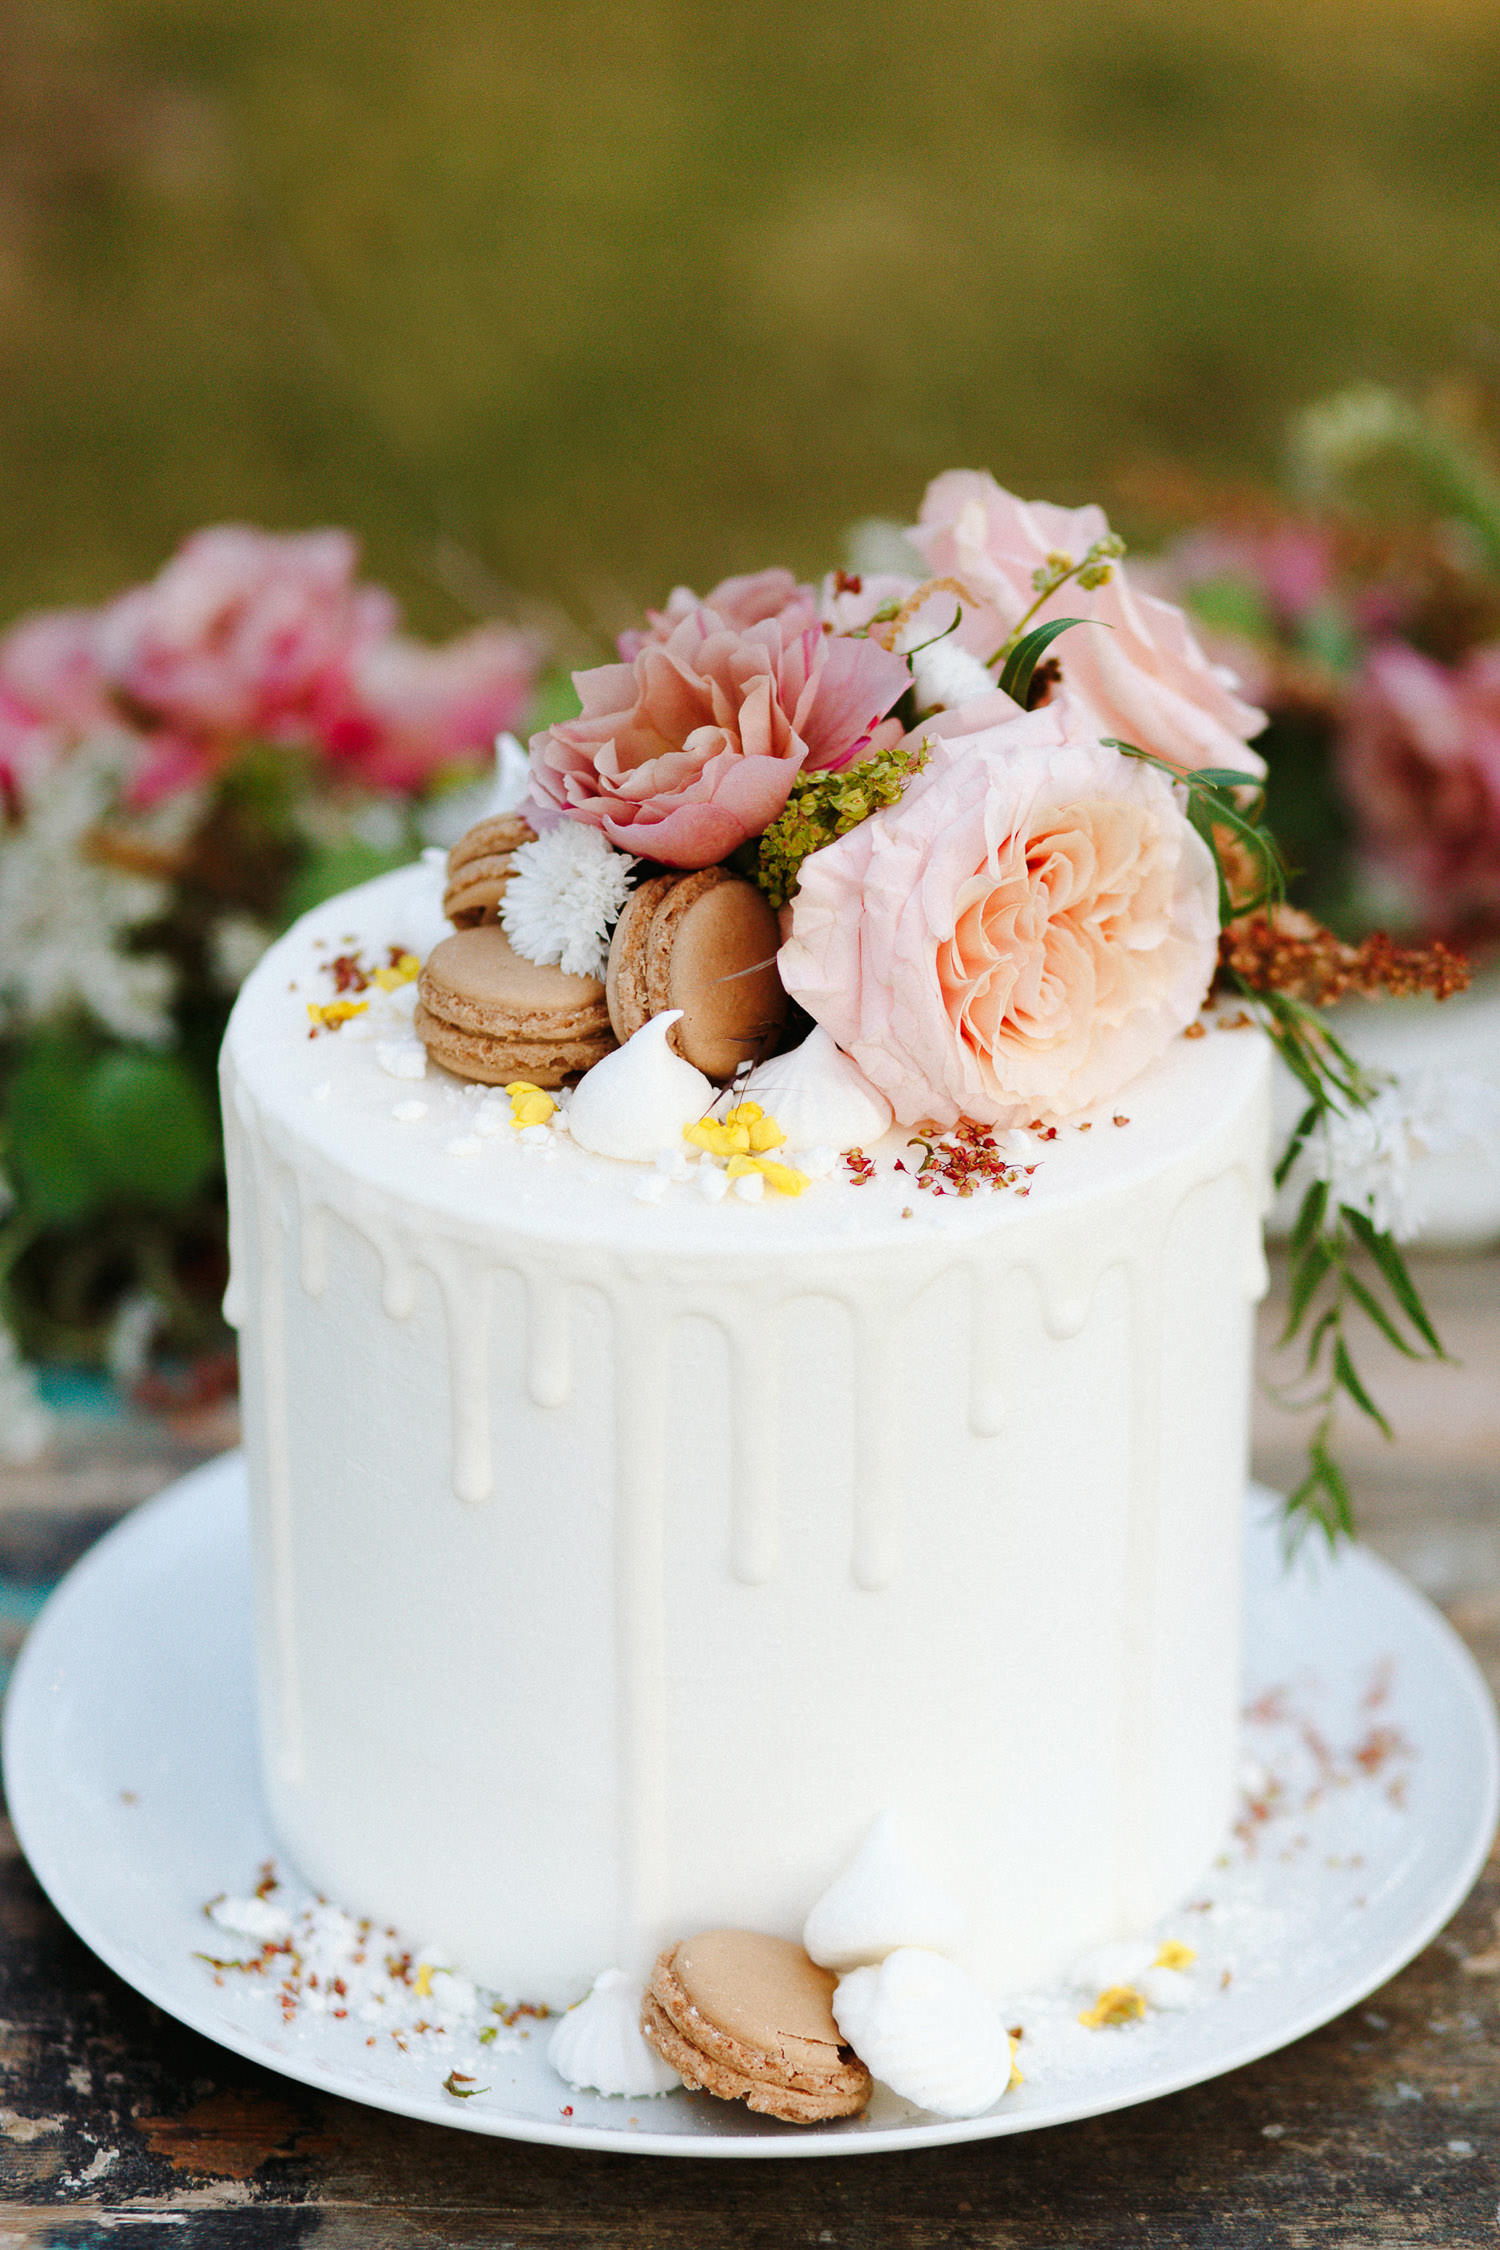 Drip Cake with macarons and flowers by Nana & Nana Cakes - Photo: Camilla Anchisi